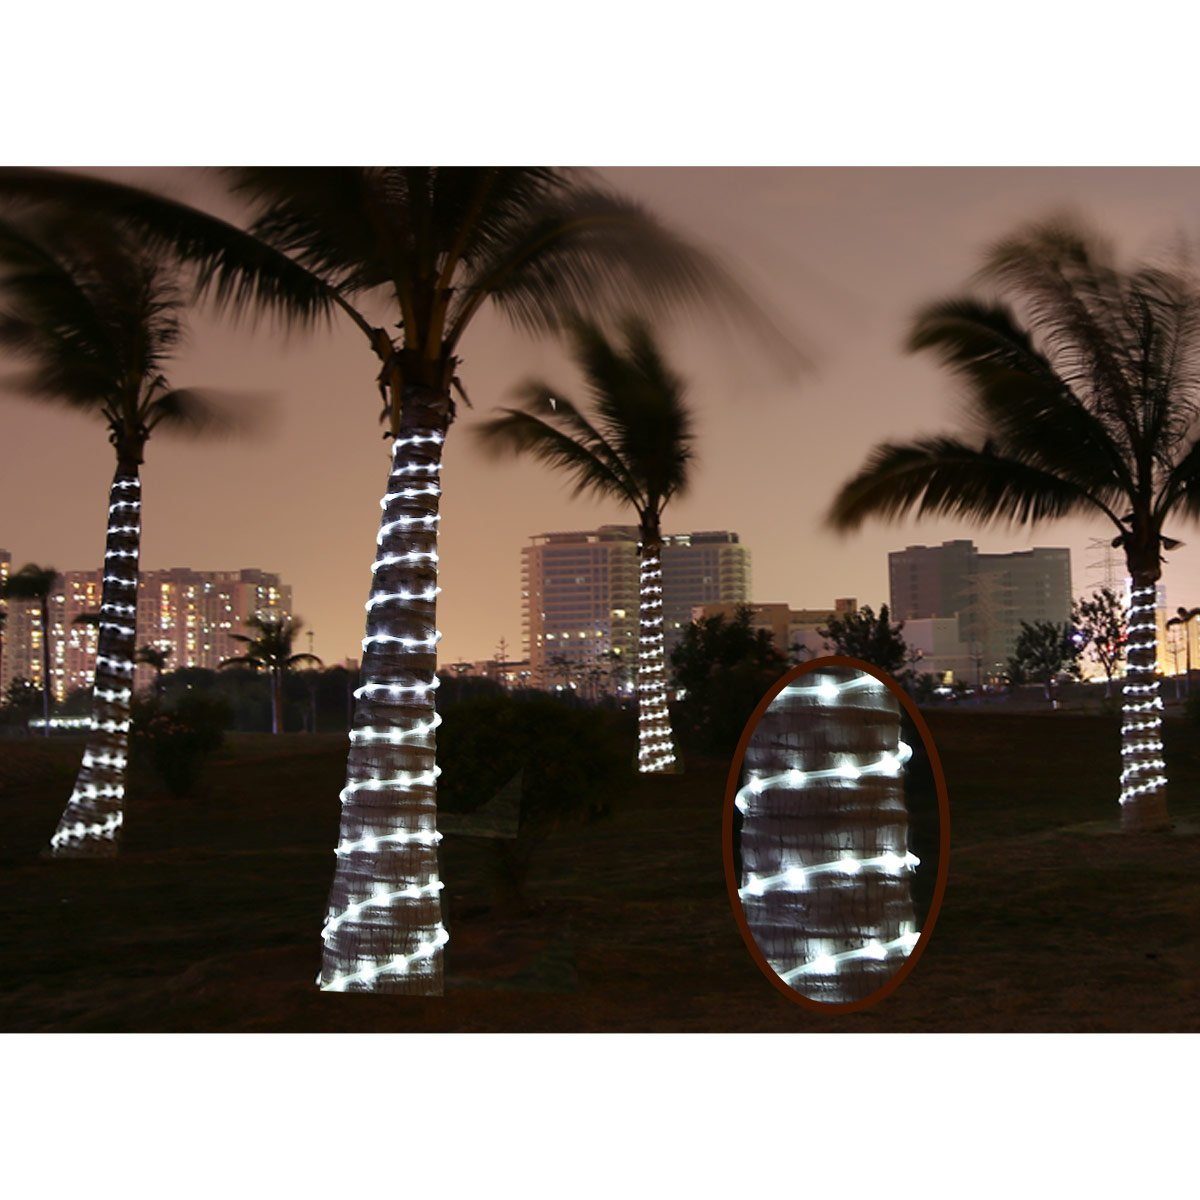 Le solar rope lights 5 meters waterproof 50 leds 12 v le solar rope lights 5 meters waterproof 50 leds 12 v daylight white portable with light sensor outdoor rope lights ideal for christmas wedding mozeypictures Images